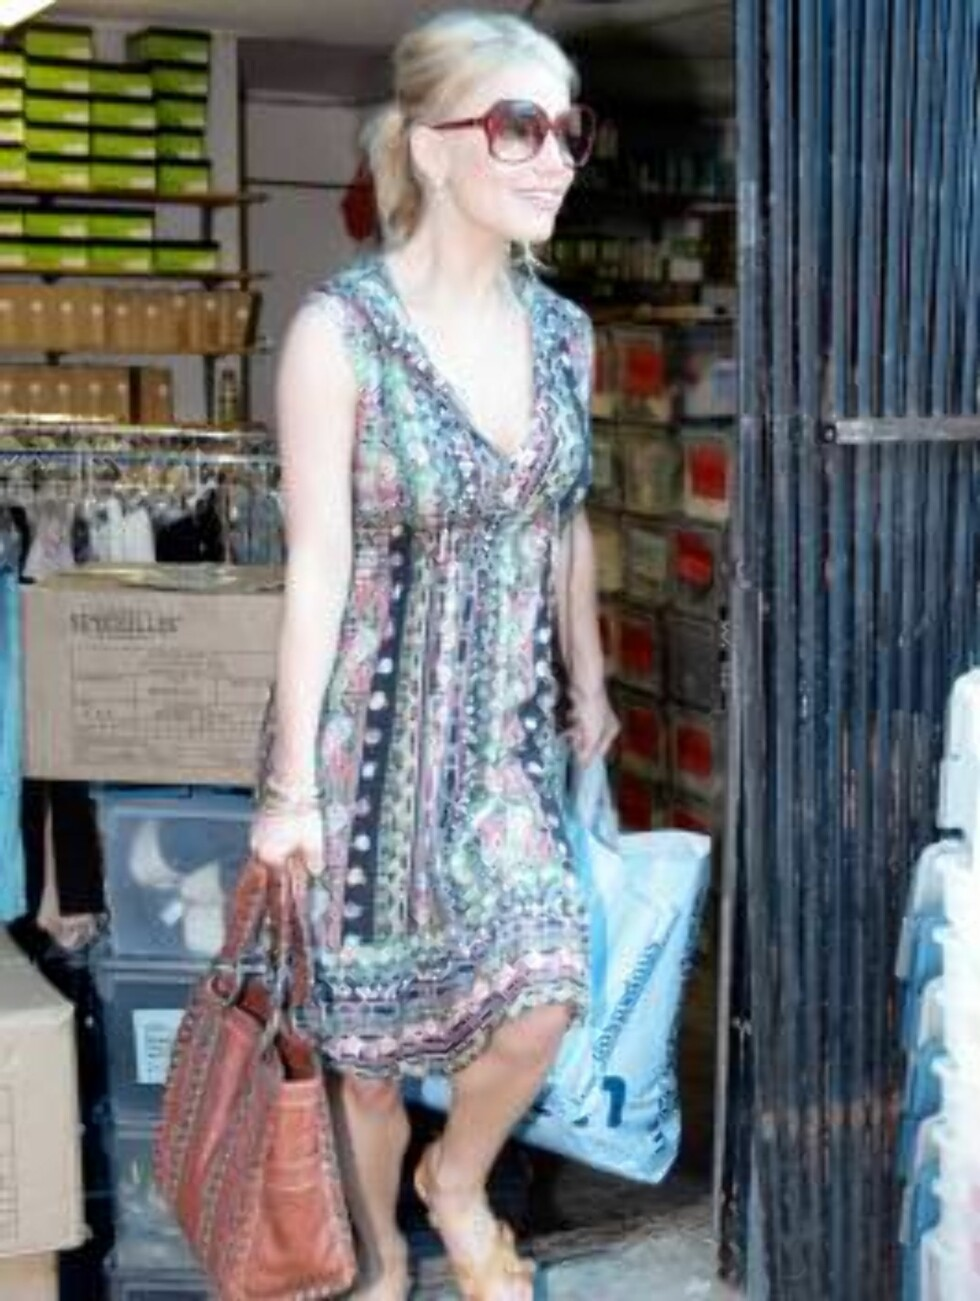 Jessica Simpson shopping spree at Kitson on Robertson in Los Angeles May 24, 2006 X17agency exclusive / ALL OVER PRESS Foto: All Over Press